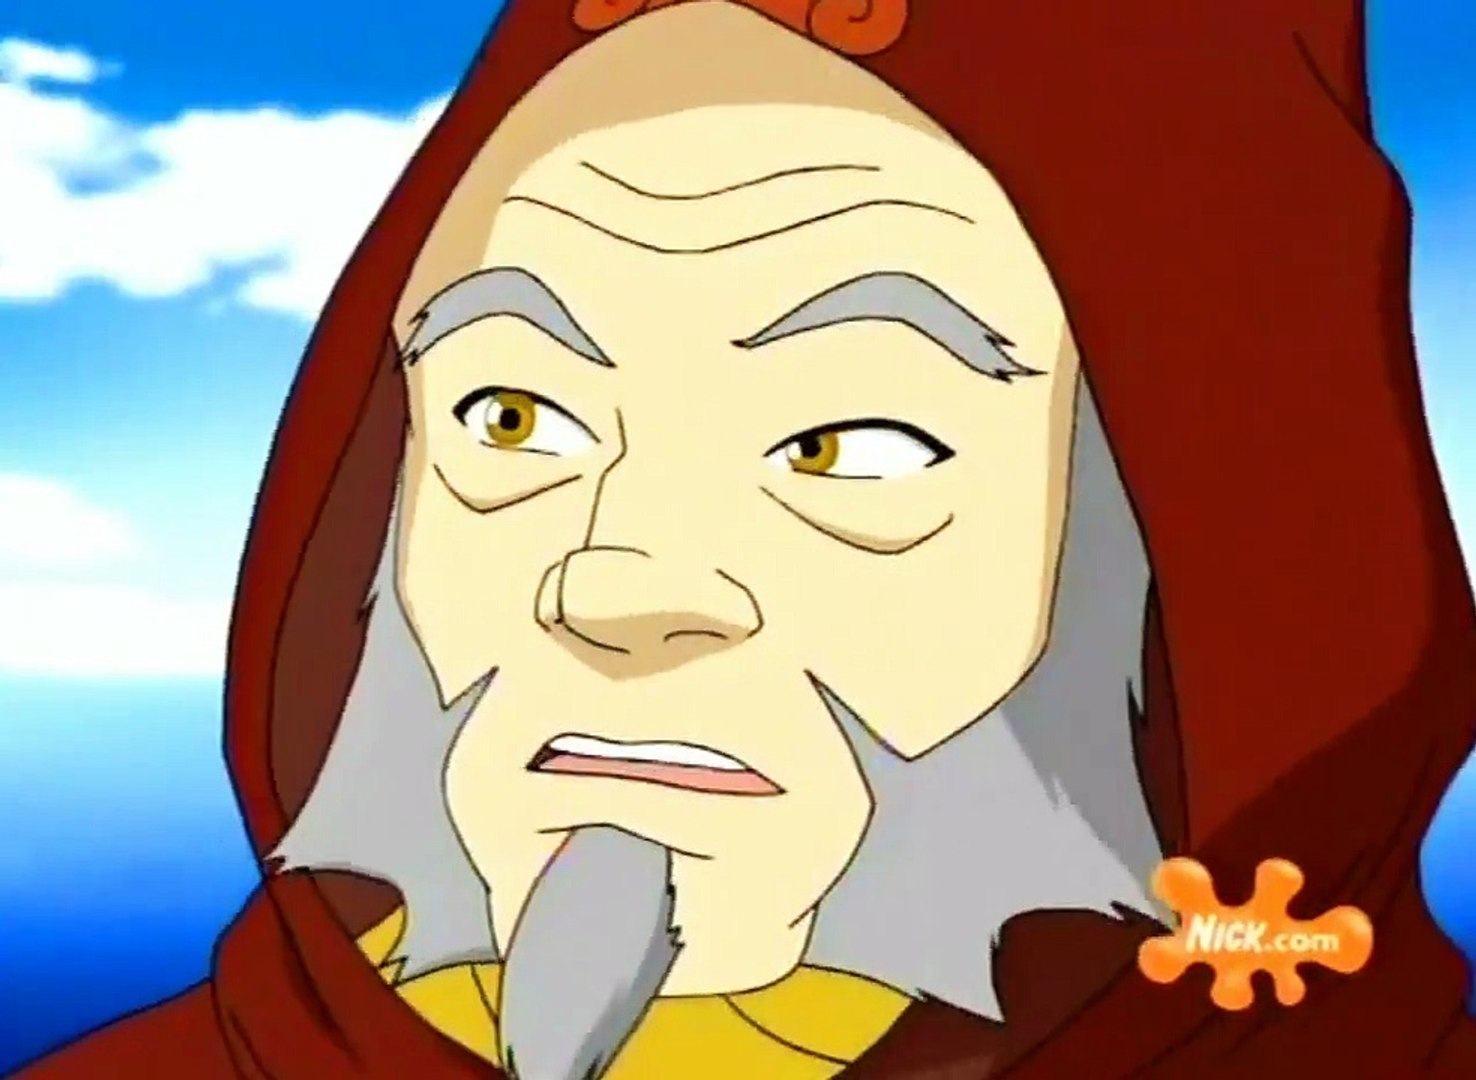 Avatar - The Last Airbender S01E20 The Siege of the North - Part 02